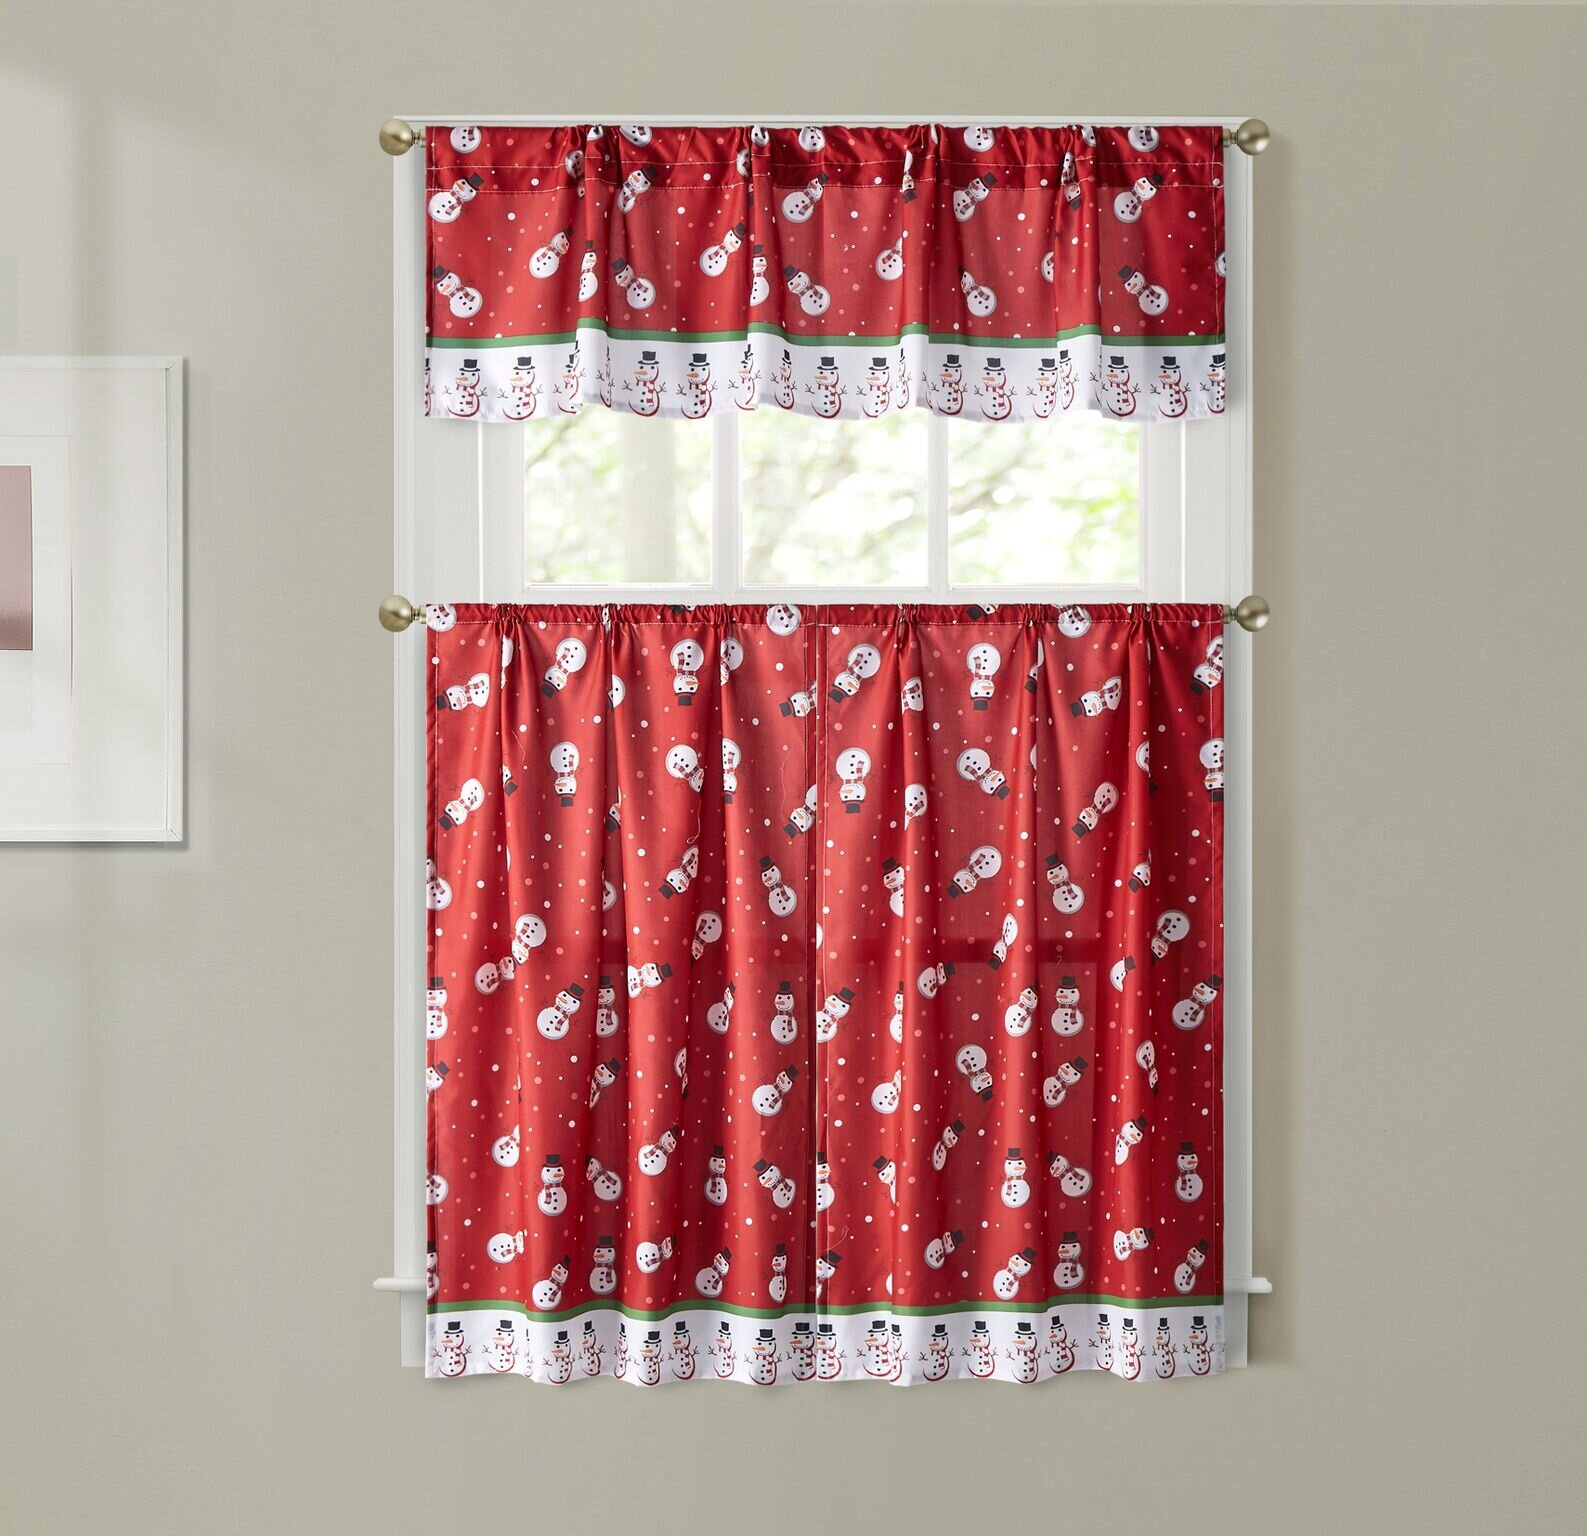 The Holiday Aisle Valances Kitchen Curtains You Ll Love In 2021 Wayfair